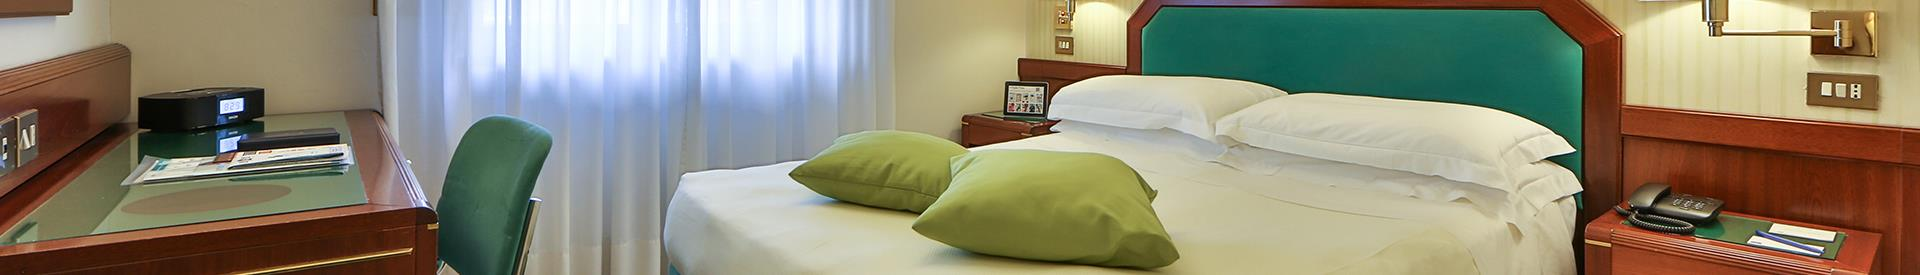 Looking for a hotel for your stay in Milano (MI)? Book/reserve at the Best Western Hotel Astoria